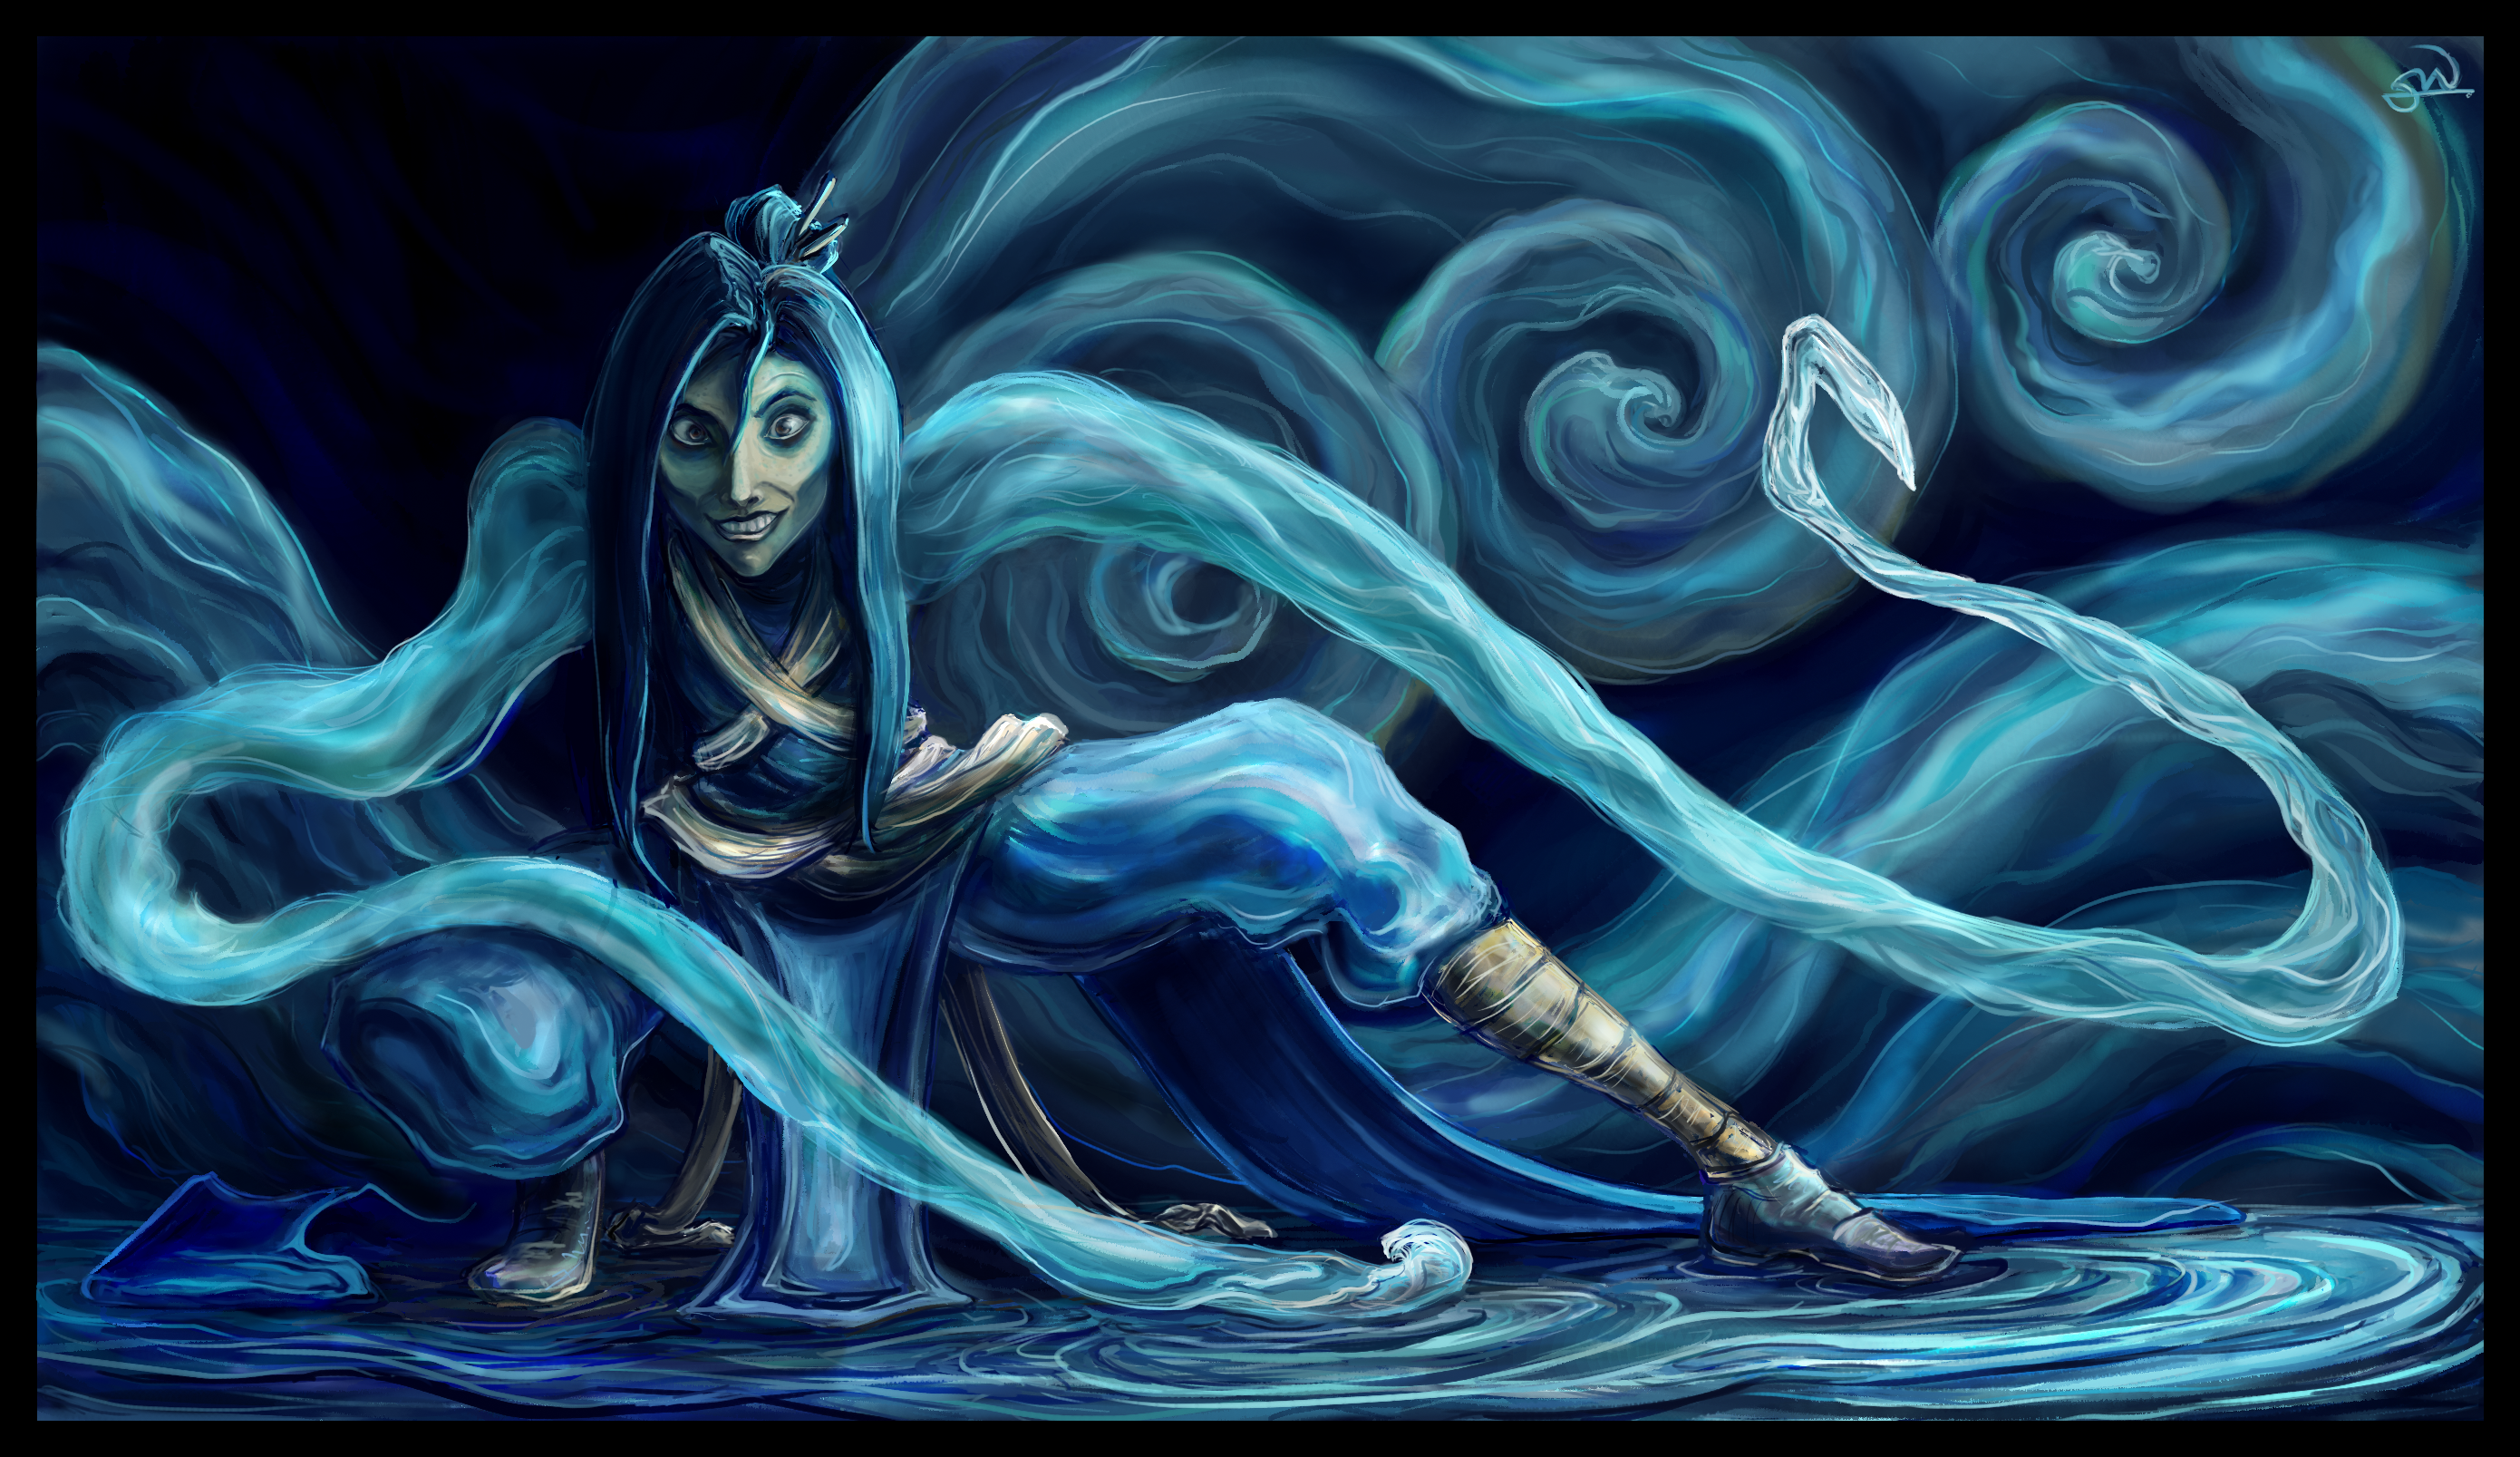 Best 52 Waterbending Wallpaper on HipWallpaper Toph 2780x1607